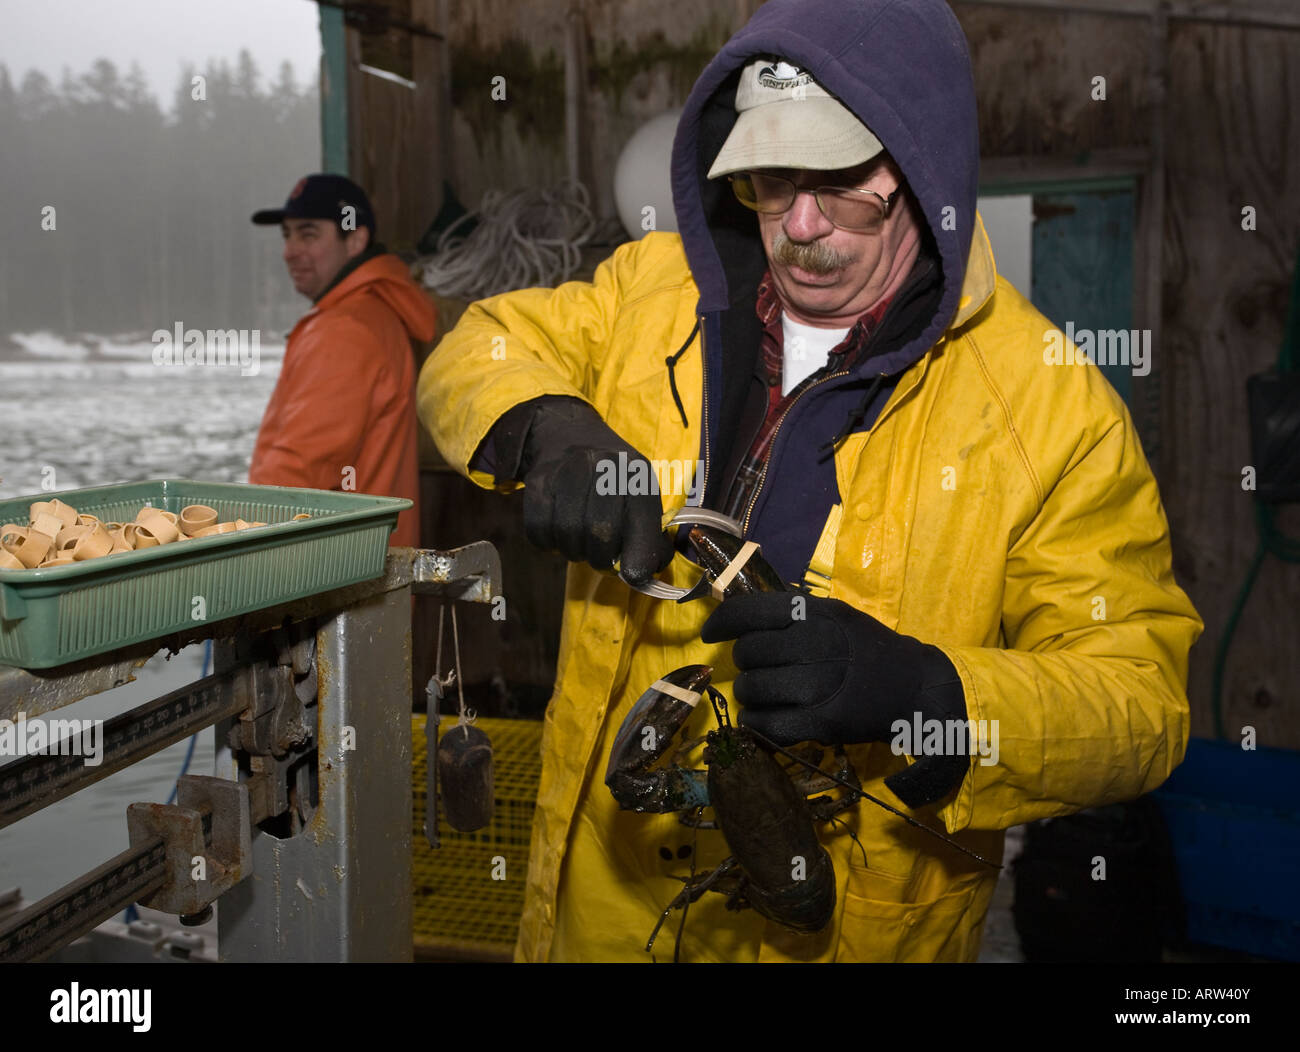 A lobsterman bands a lobster's claws in a lobster car on an icy foggy March day in Stonington, Deer Isle, Maine. - Stock Image